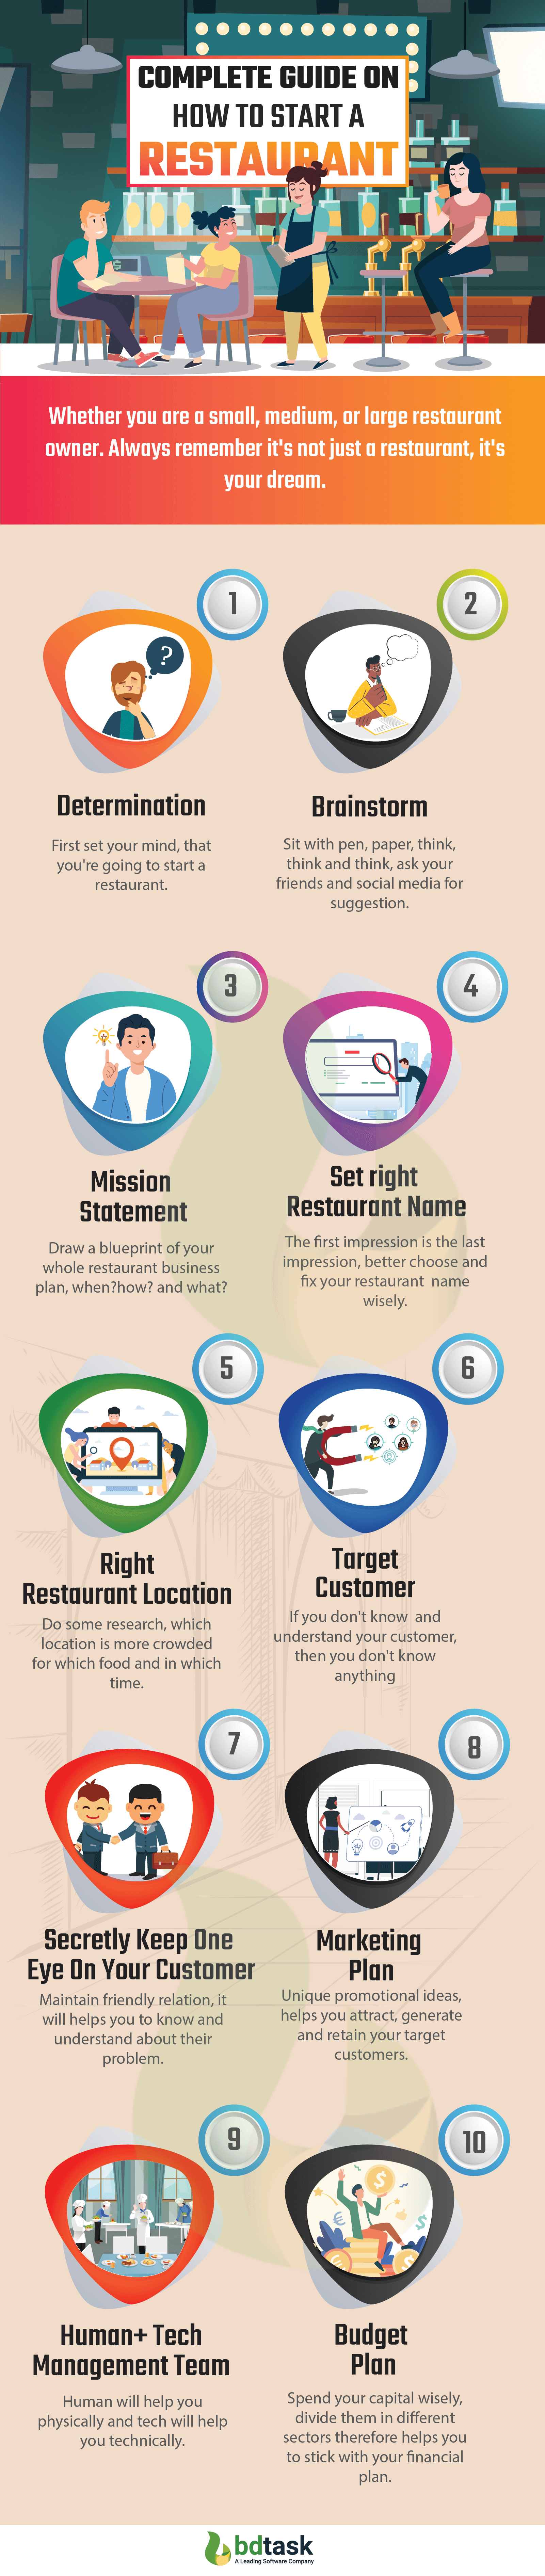 How to Start a Restaurant Infographic by Bdtask